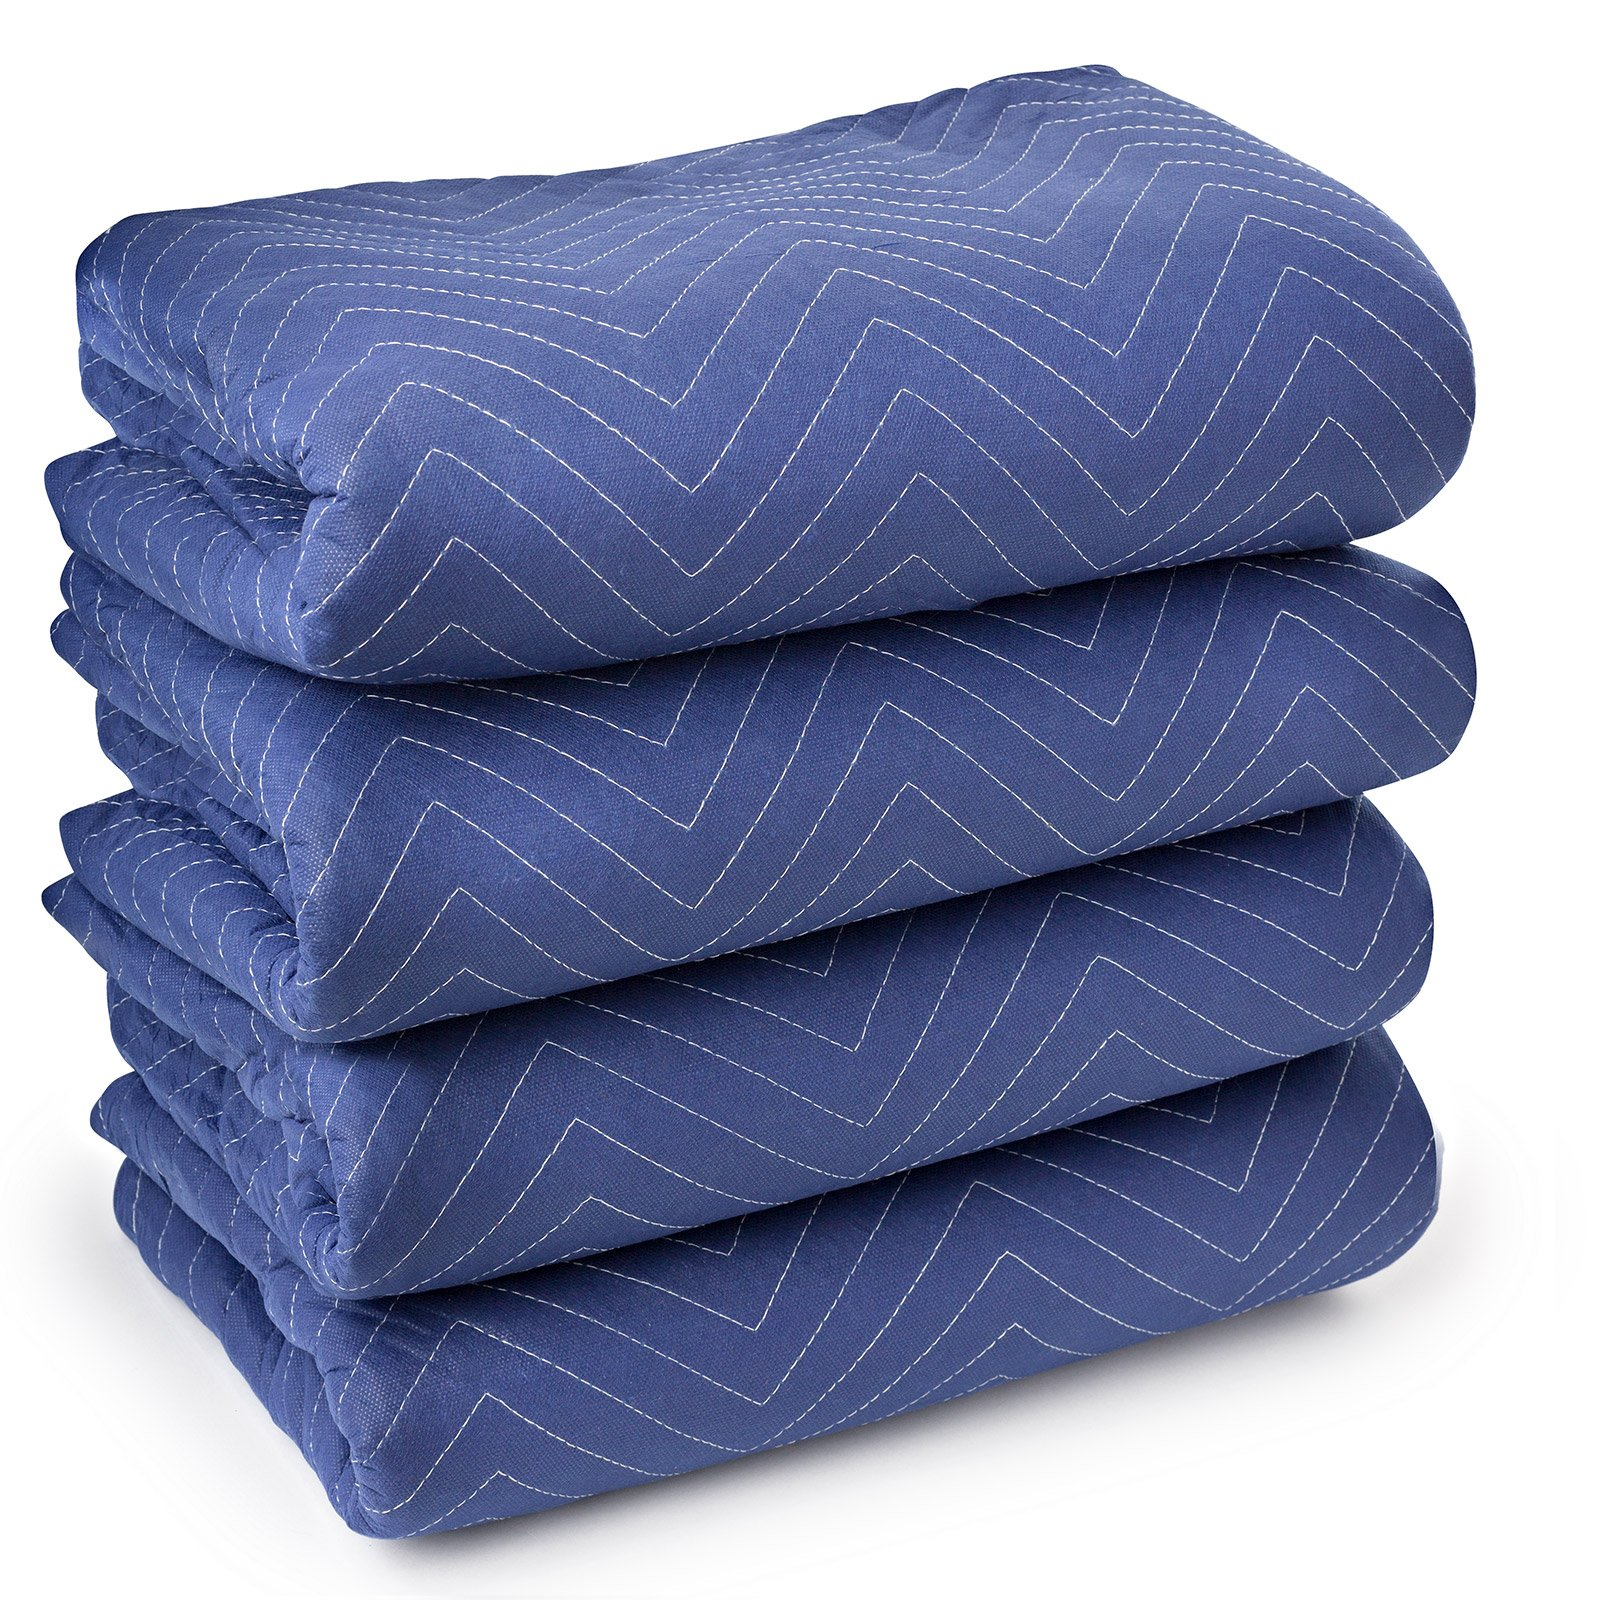 Sure-Max 4 Moving & Packing Blankets - Deluxe Pro - 80'' x 72'' (40 lb/dz weight) - Professional Quilted Shipping Furniture Pads Royal Blue by Sure-Max